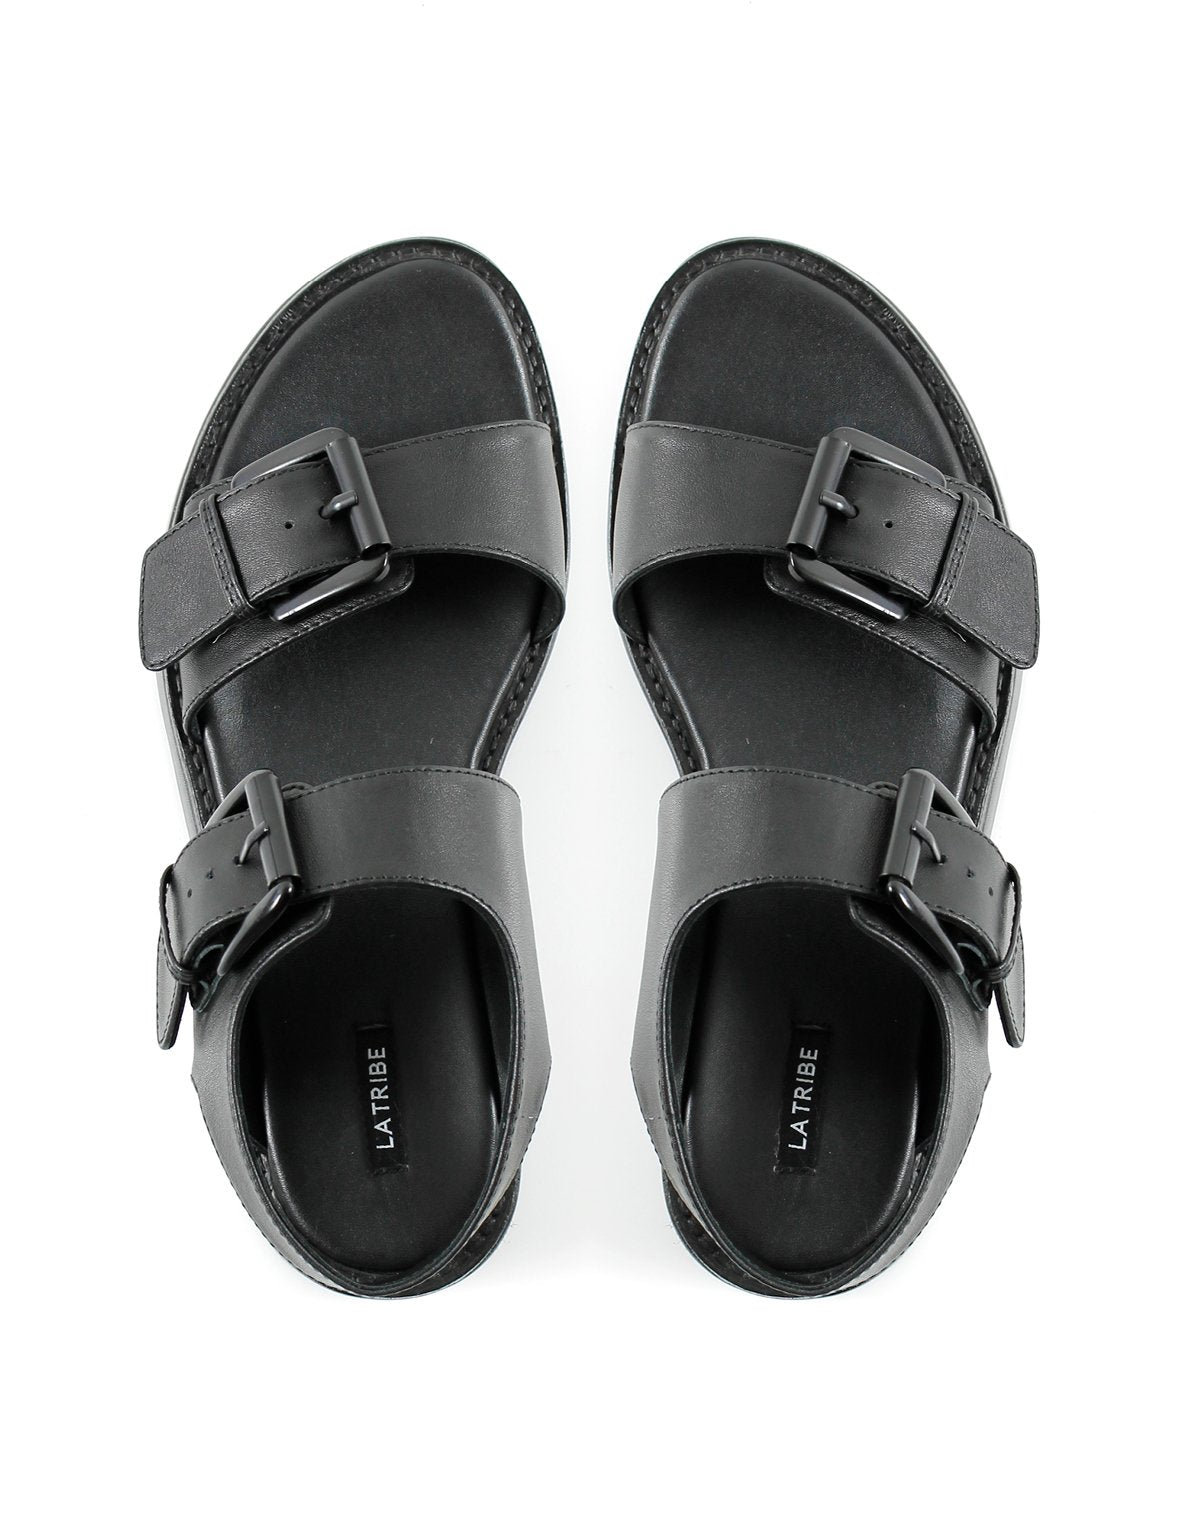 Summer Sun SHOE La Tribe | Buckle Sandal - Black